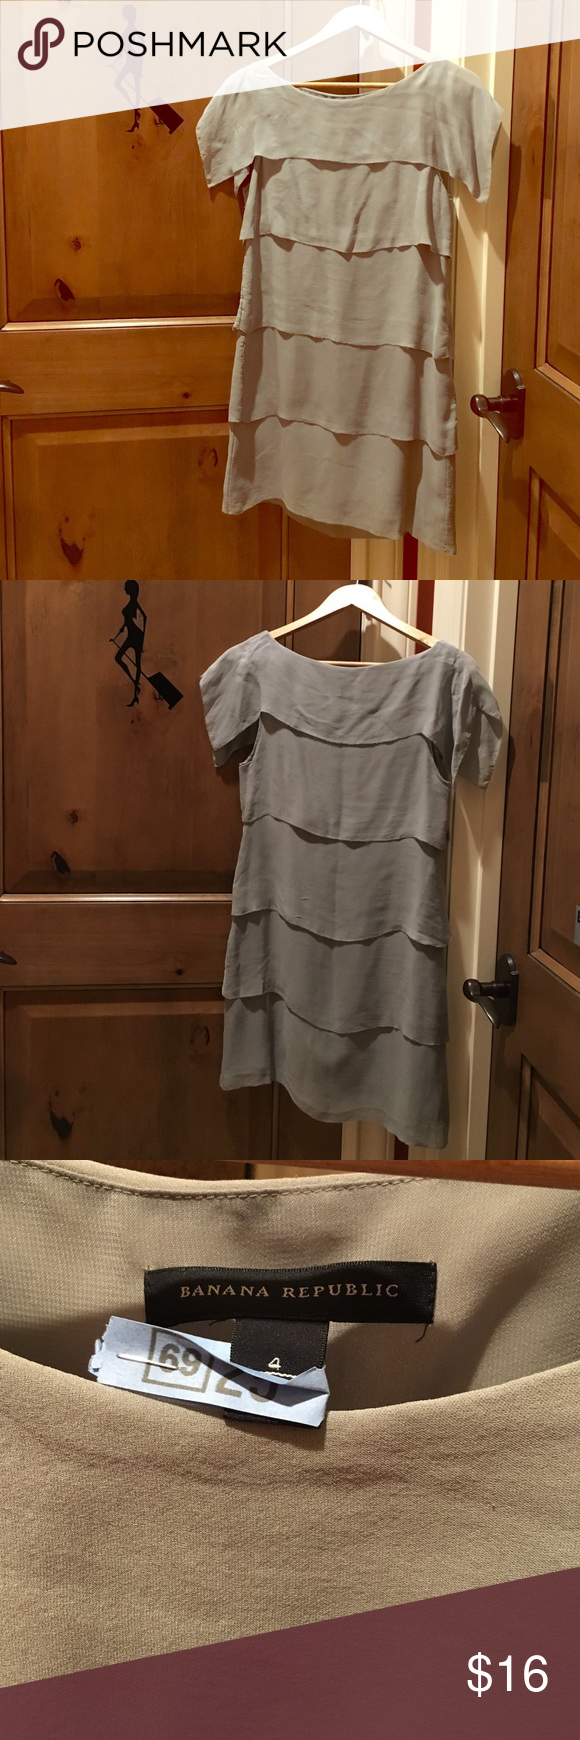 Banana Republic gray layer dress Banana Republic light gray layer dress.  Size 4.  Material is 100% silk with full lining made of 100% polyester.  No stain.  It has tiny thread run (see pic 4).  Non-smoking and pet free home. Banana Republic Dresses